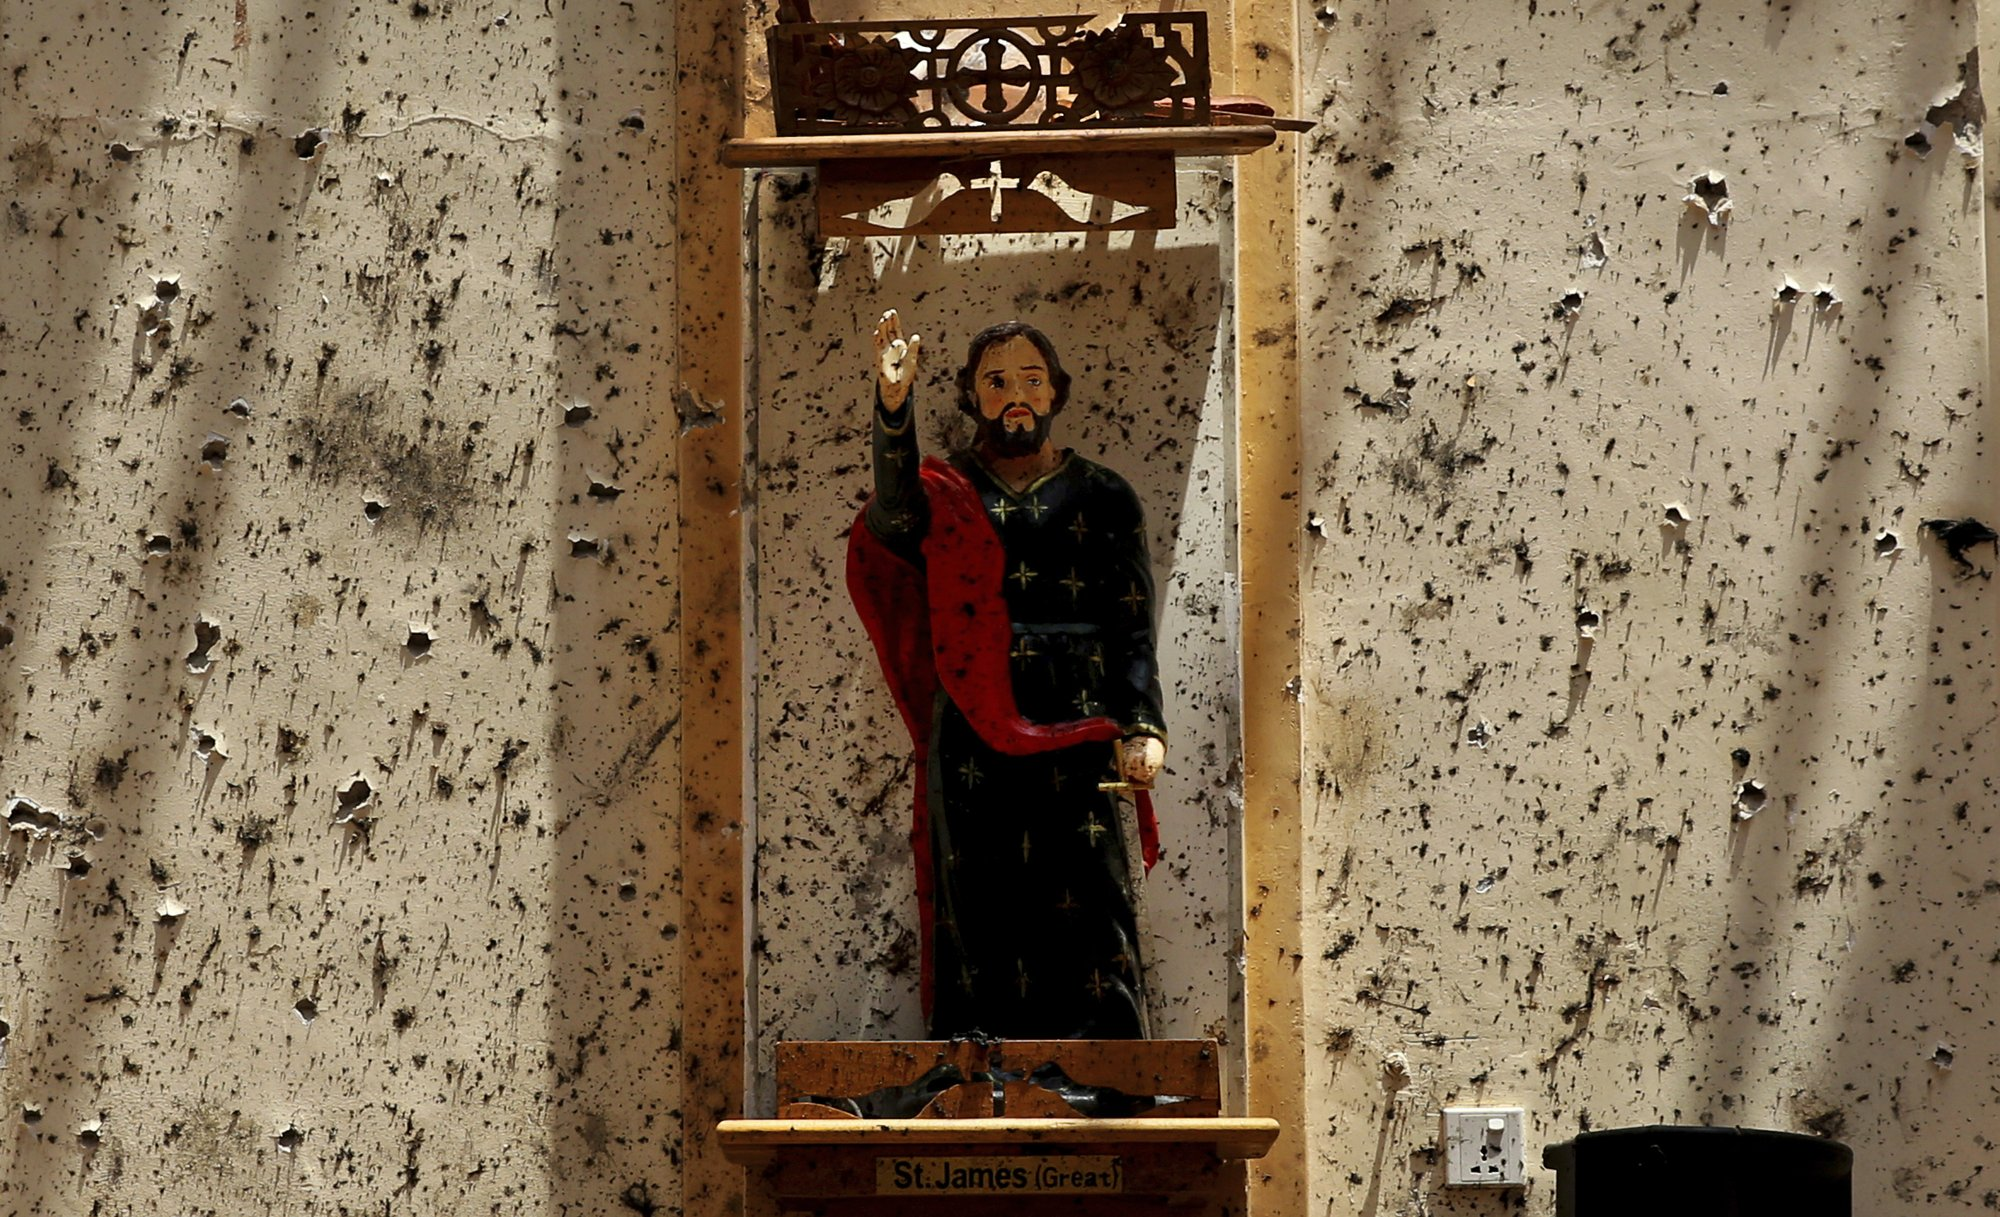 In this Thursday, April 25, 2019 photo, a statue of St. James stands on a wall speckled with fragments of shrapnel at St. Sebastian's Church, where a suicide bomber blew himself up in Negombo, north of Colombo, Sri Lanka. Nearly a week later, the smell of death is everywhere, though the bodies are long gone. Yet somehow, there's a beauty to St. Sebastian's, a neighborhood church in a Catholic enclave north of Sri Lanka's capital. You can see the beauty in the broken stained-glass windows. It's there as the sun shines through the roof's gaping holes. It's there in the little statues that refused to fall over, and despite the swarms of police and soldiers who seem to be everywhere now in the streets of the seaside town of Negombo. (AP Photo/Manish Swarup)